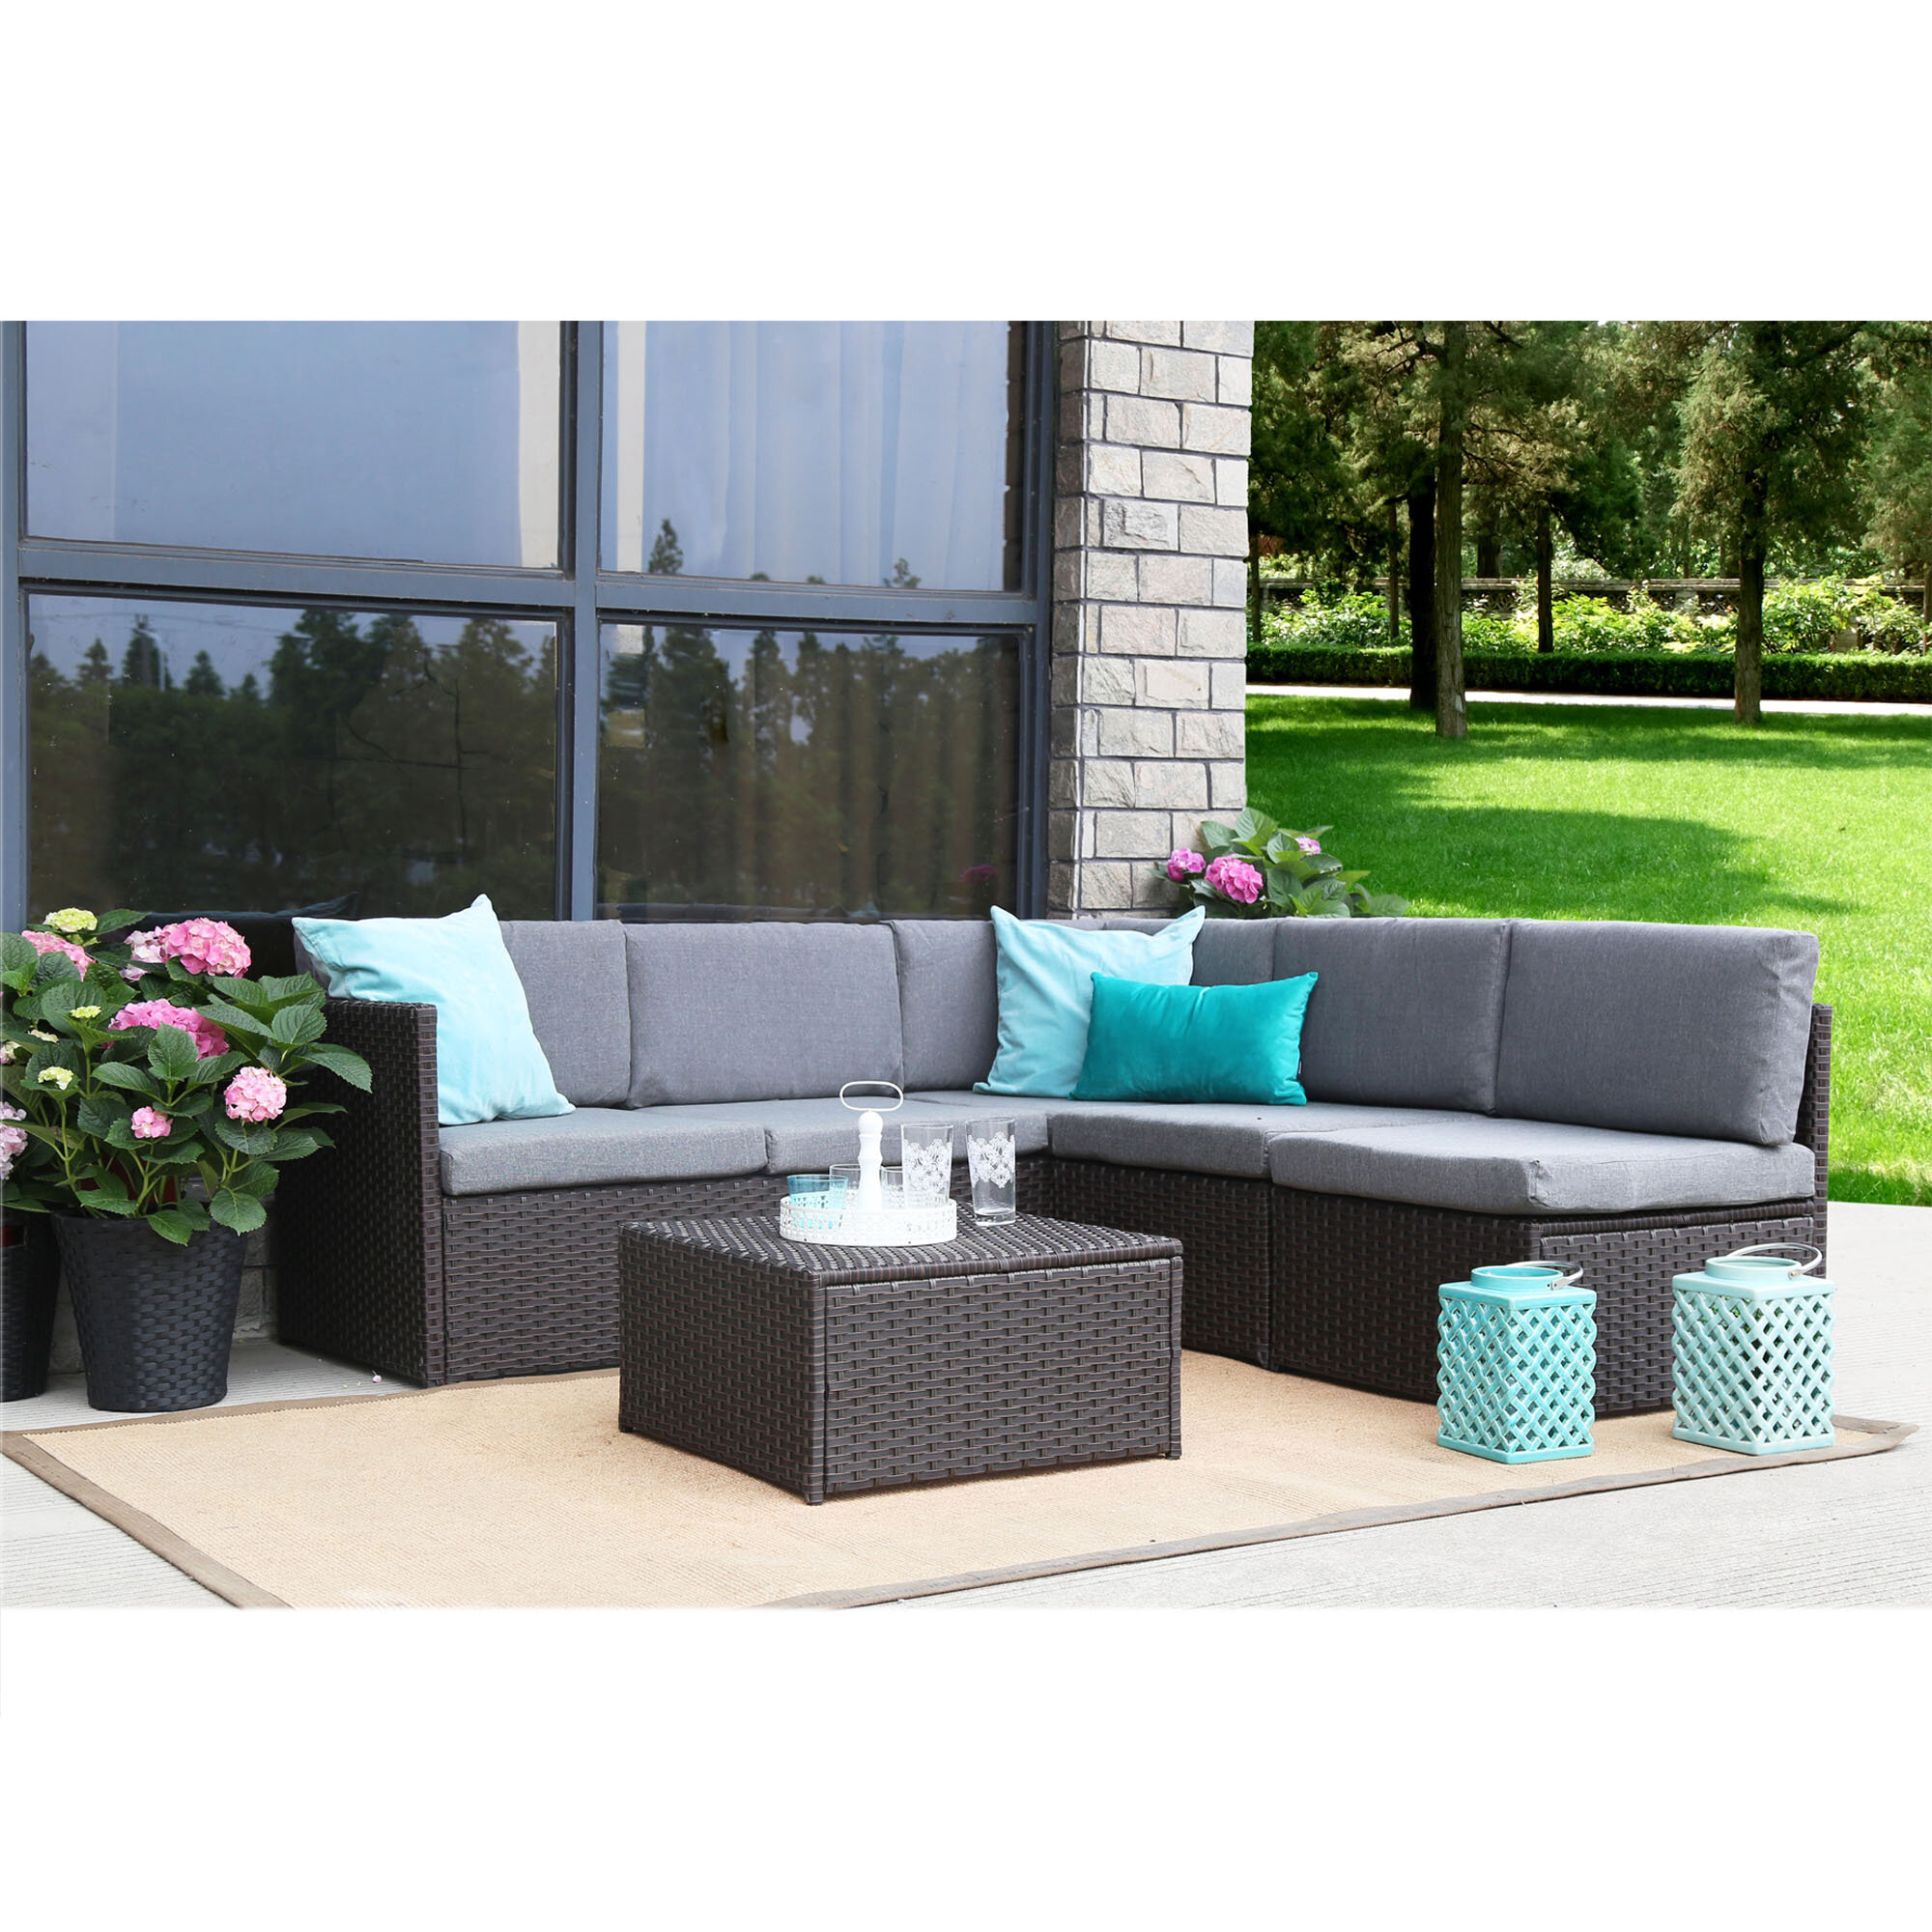 Wrought Studio Mabie Complete 4 Piece Sectional/Sofa Set with ...